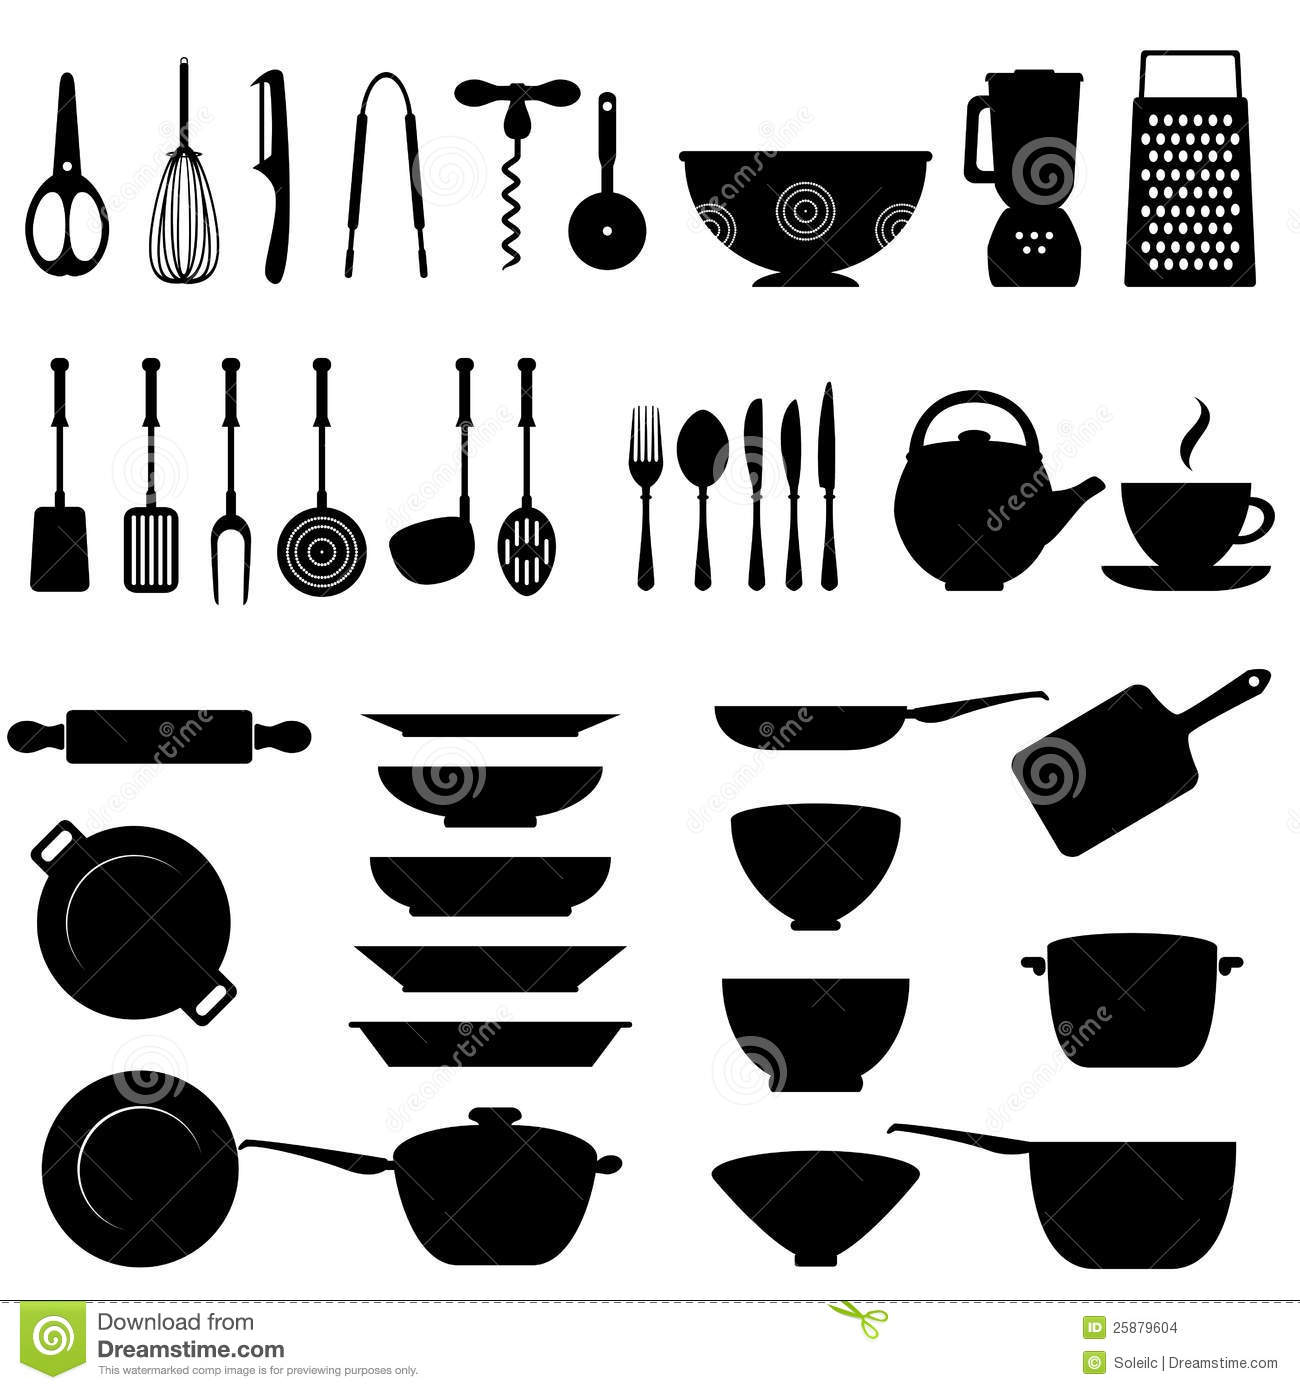 Kitchen utensil icon set stock images image 25879604 - Ustensil de cuisine ...